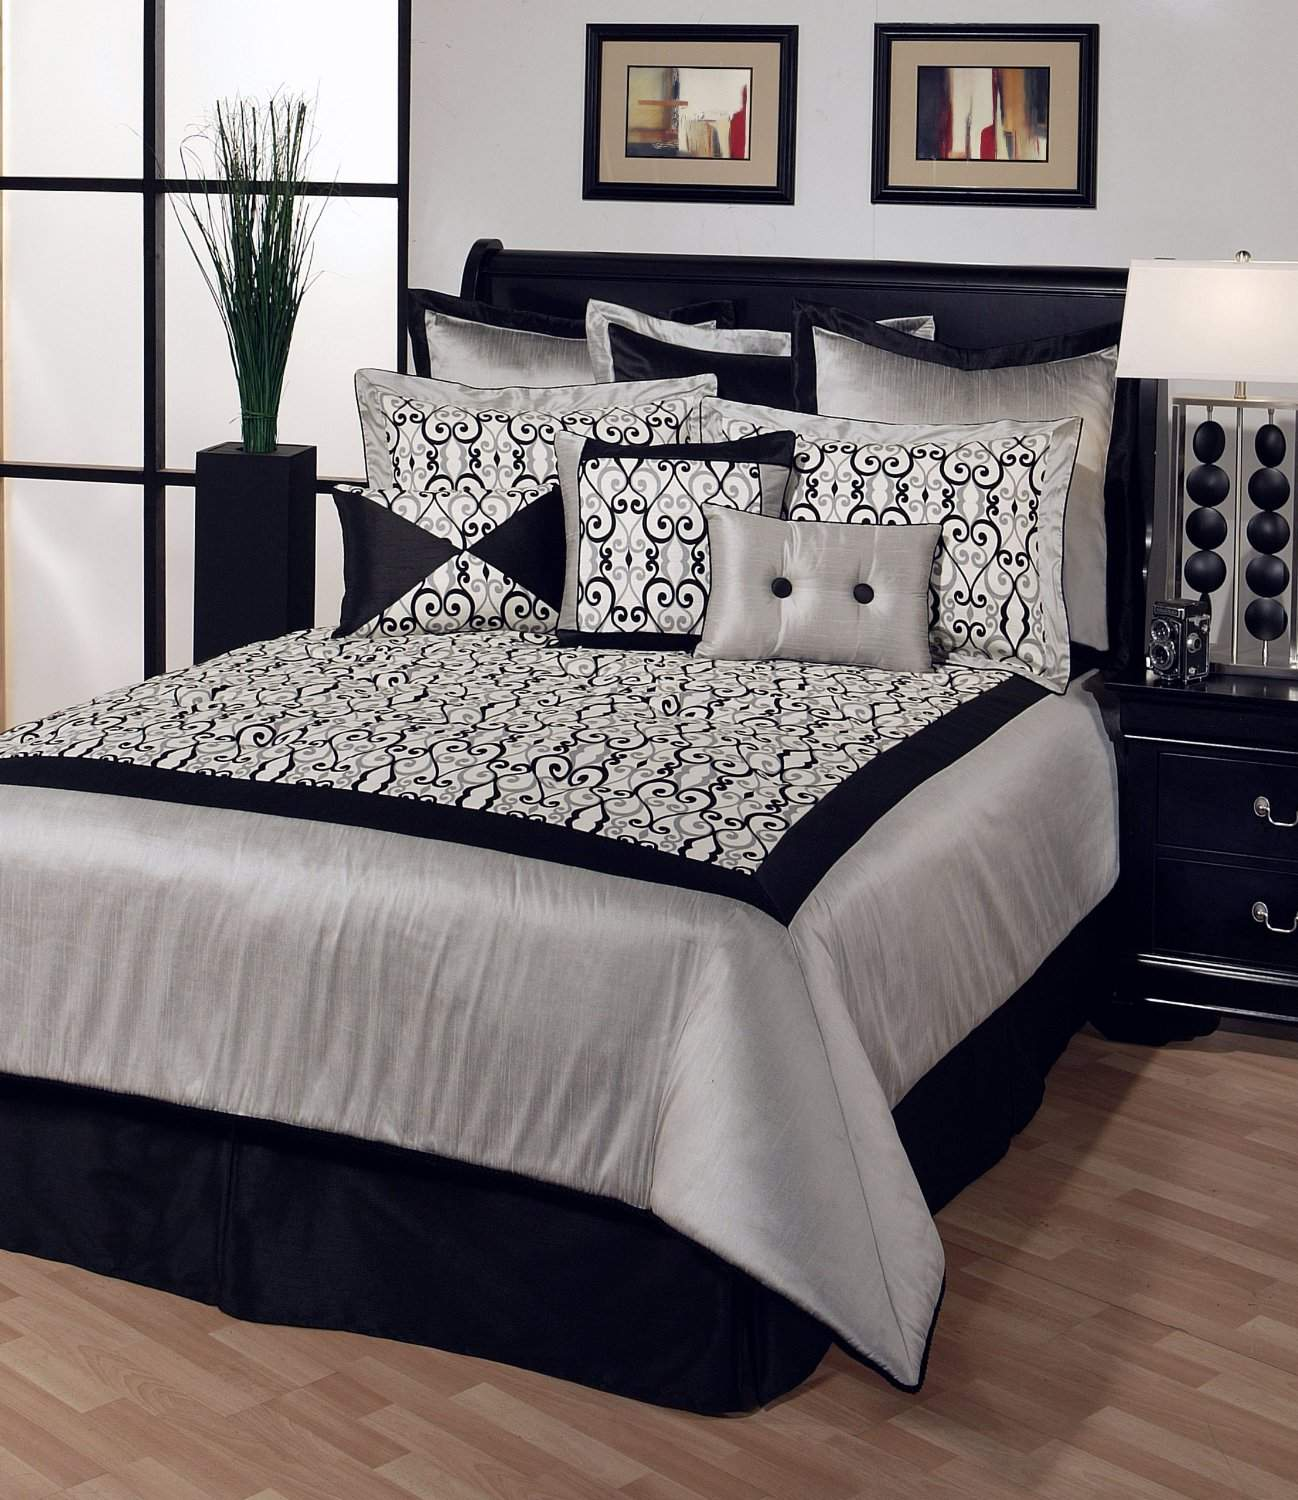 black-and-white-bedrooms-pictures-decorating-ideas